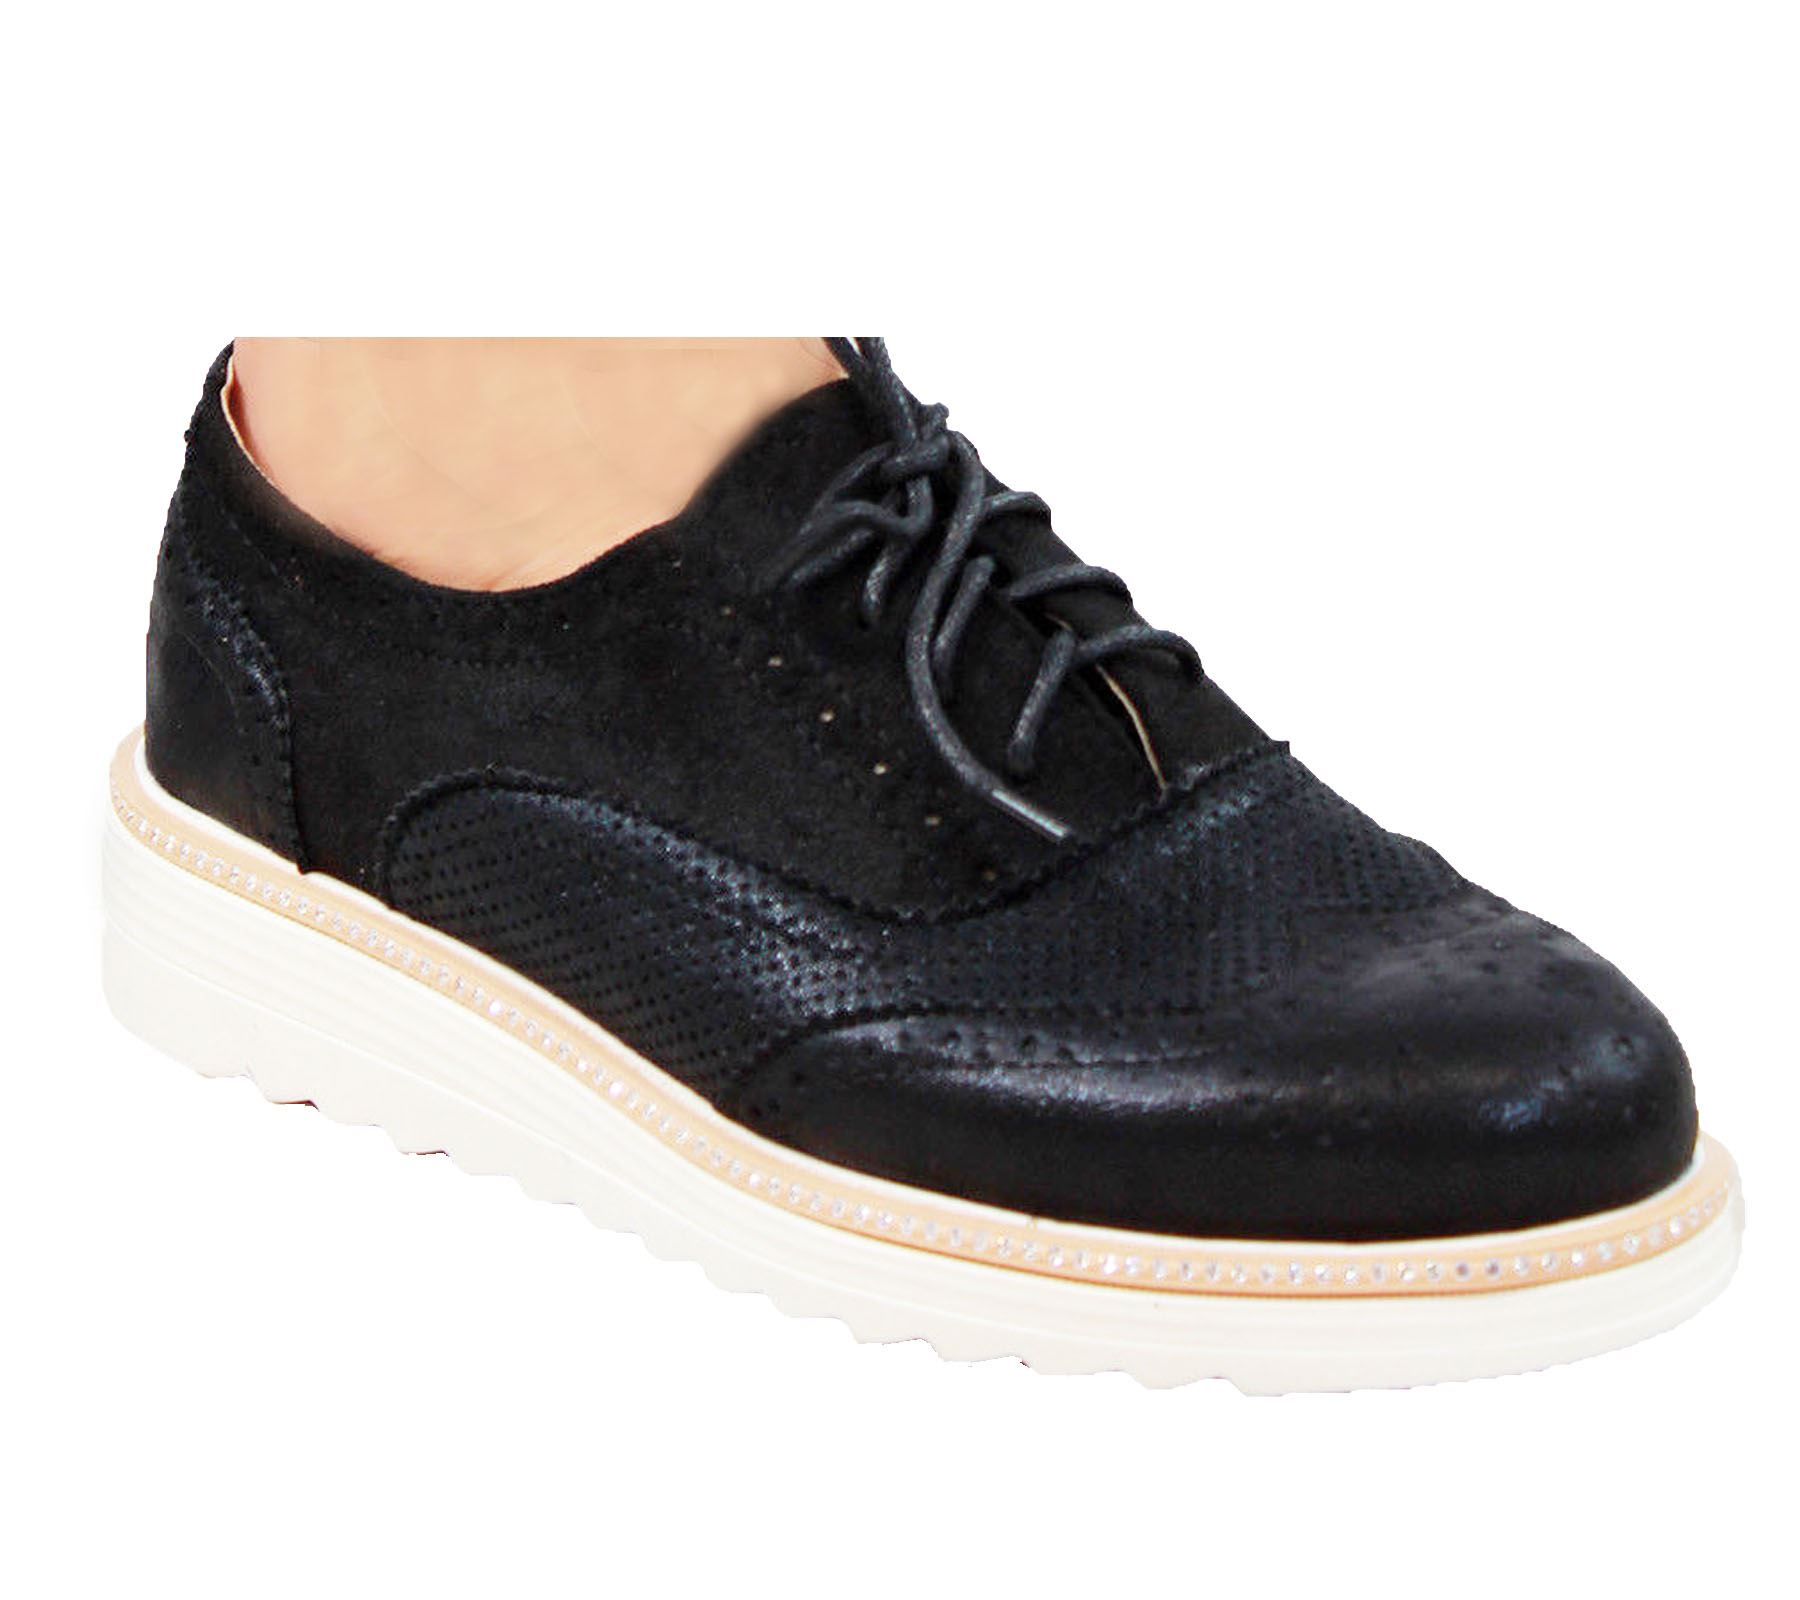 Ladies-Brogue-Lace-Up-Shoes-Womens-Oxford-Smart-Office-Loafers-Shoes miniatura 9